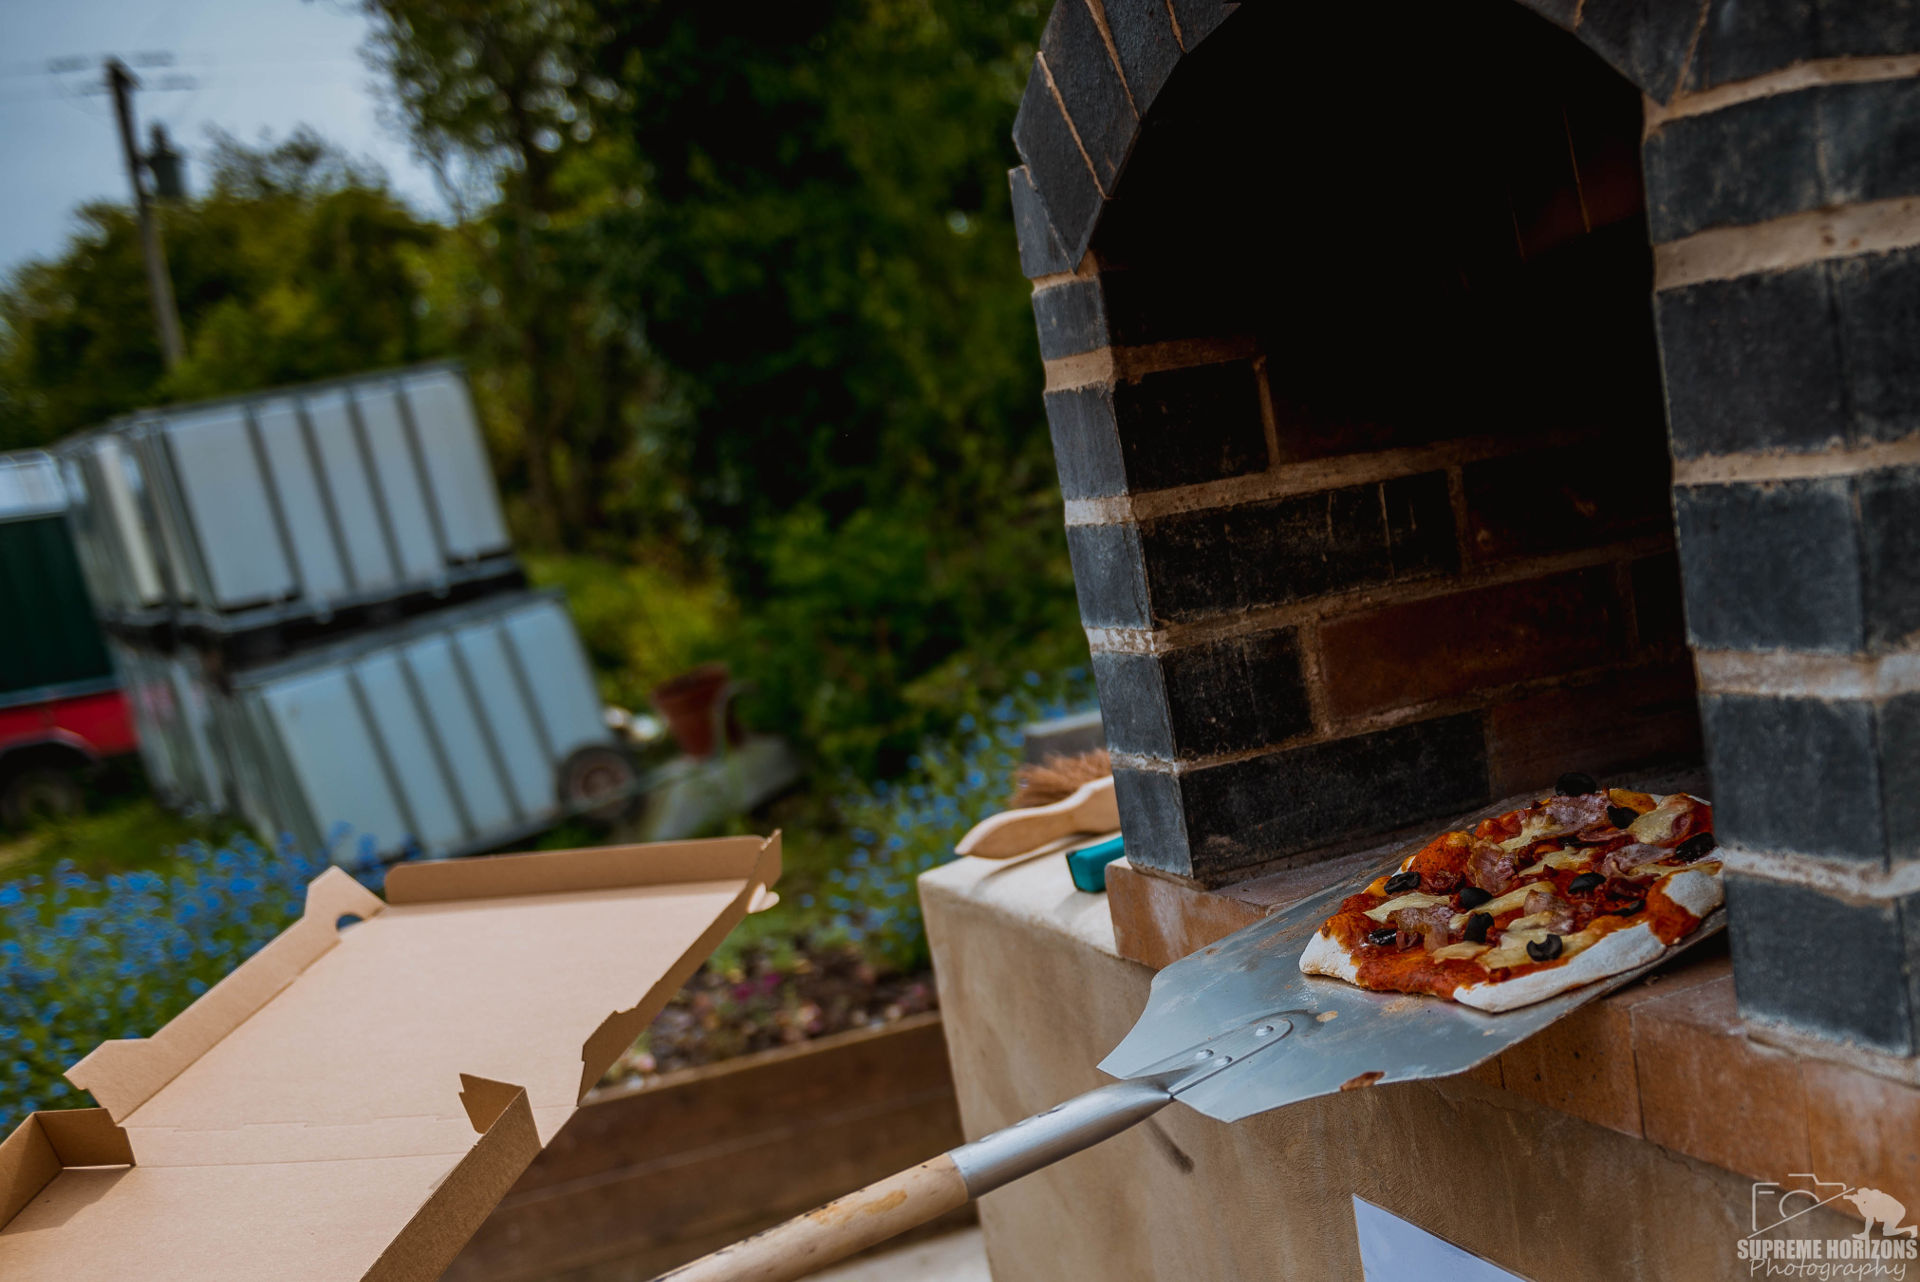 pizza fresh out of oven at llanblethian orchards cider barn south wales